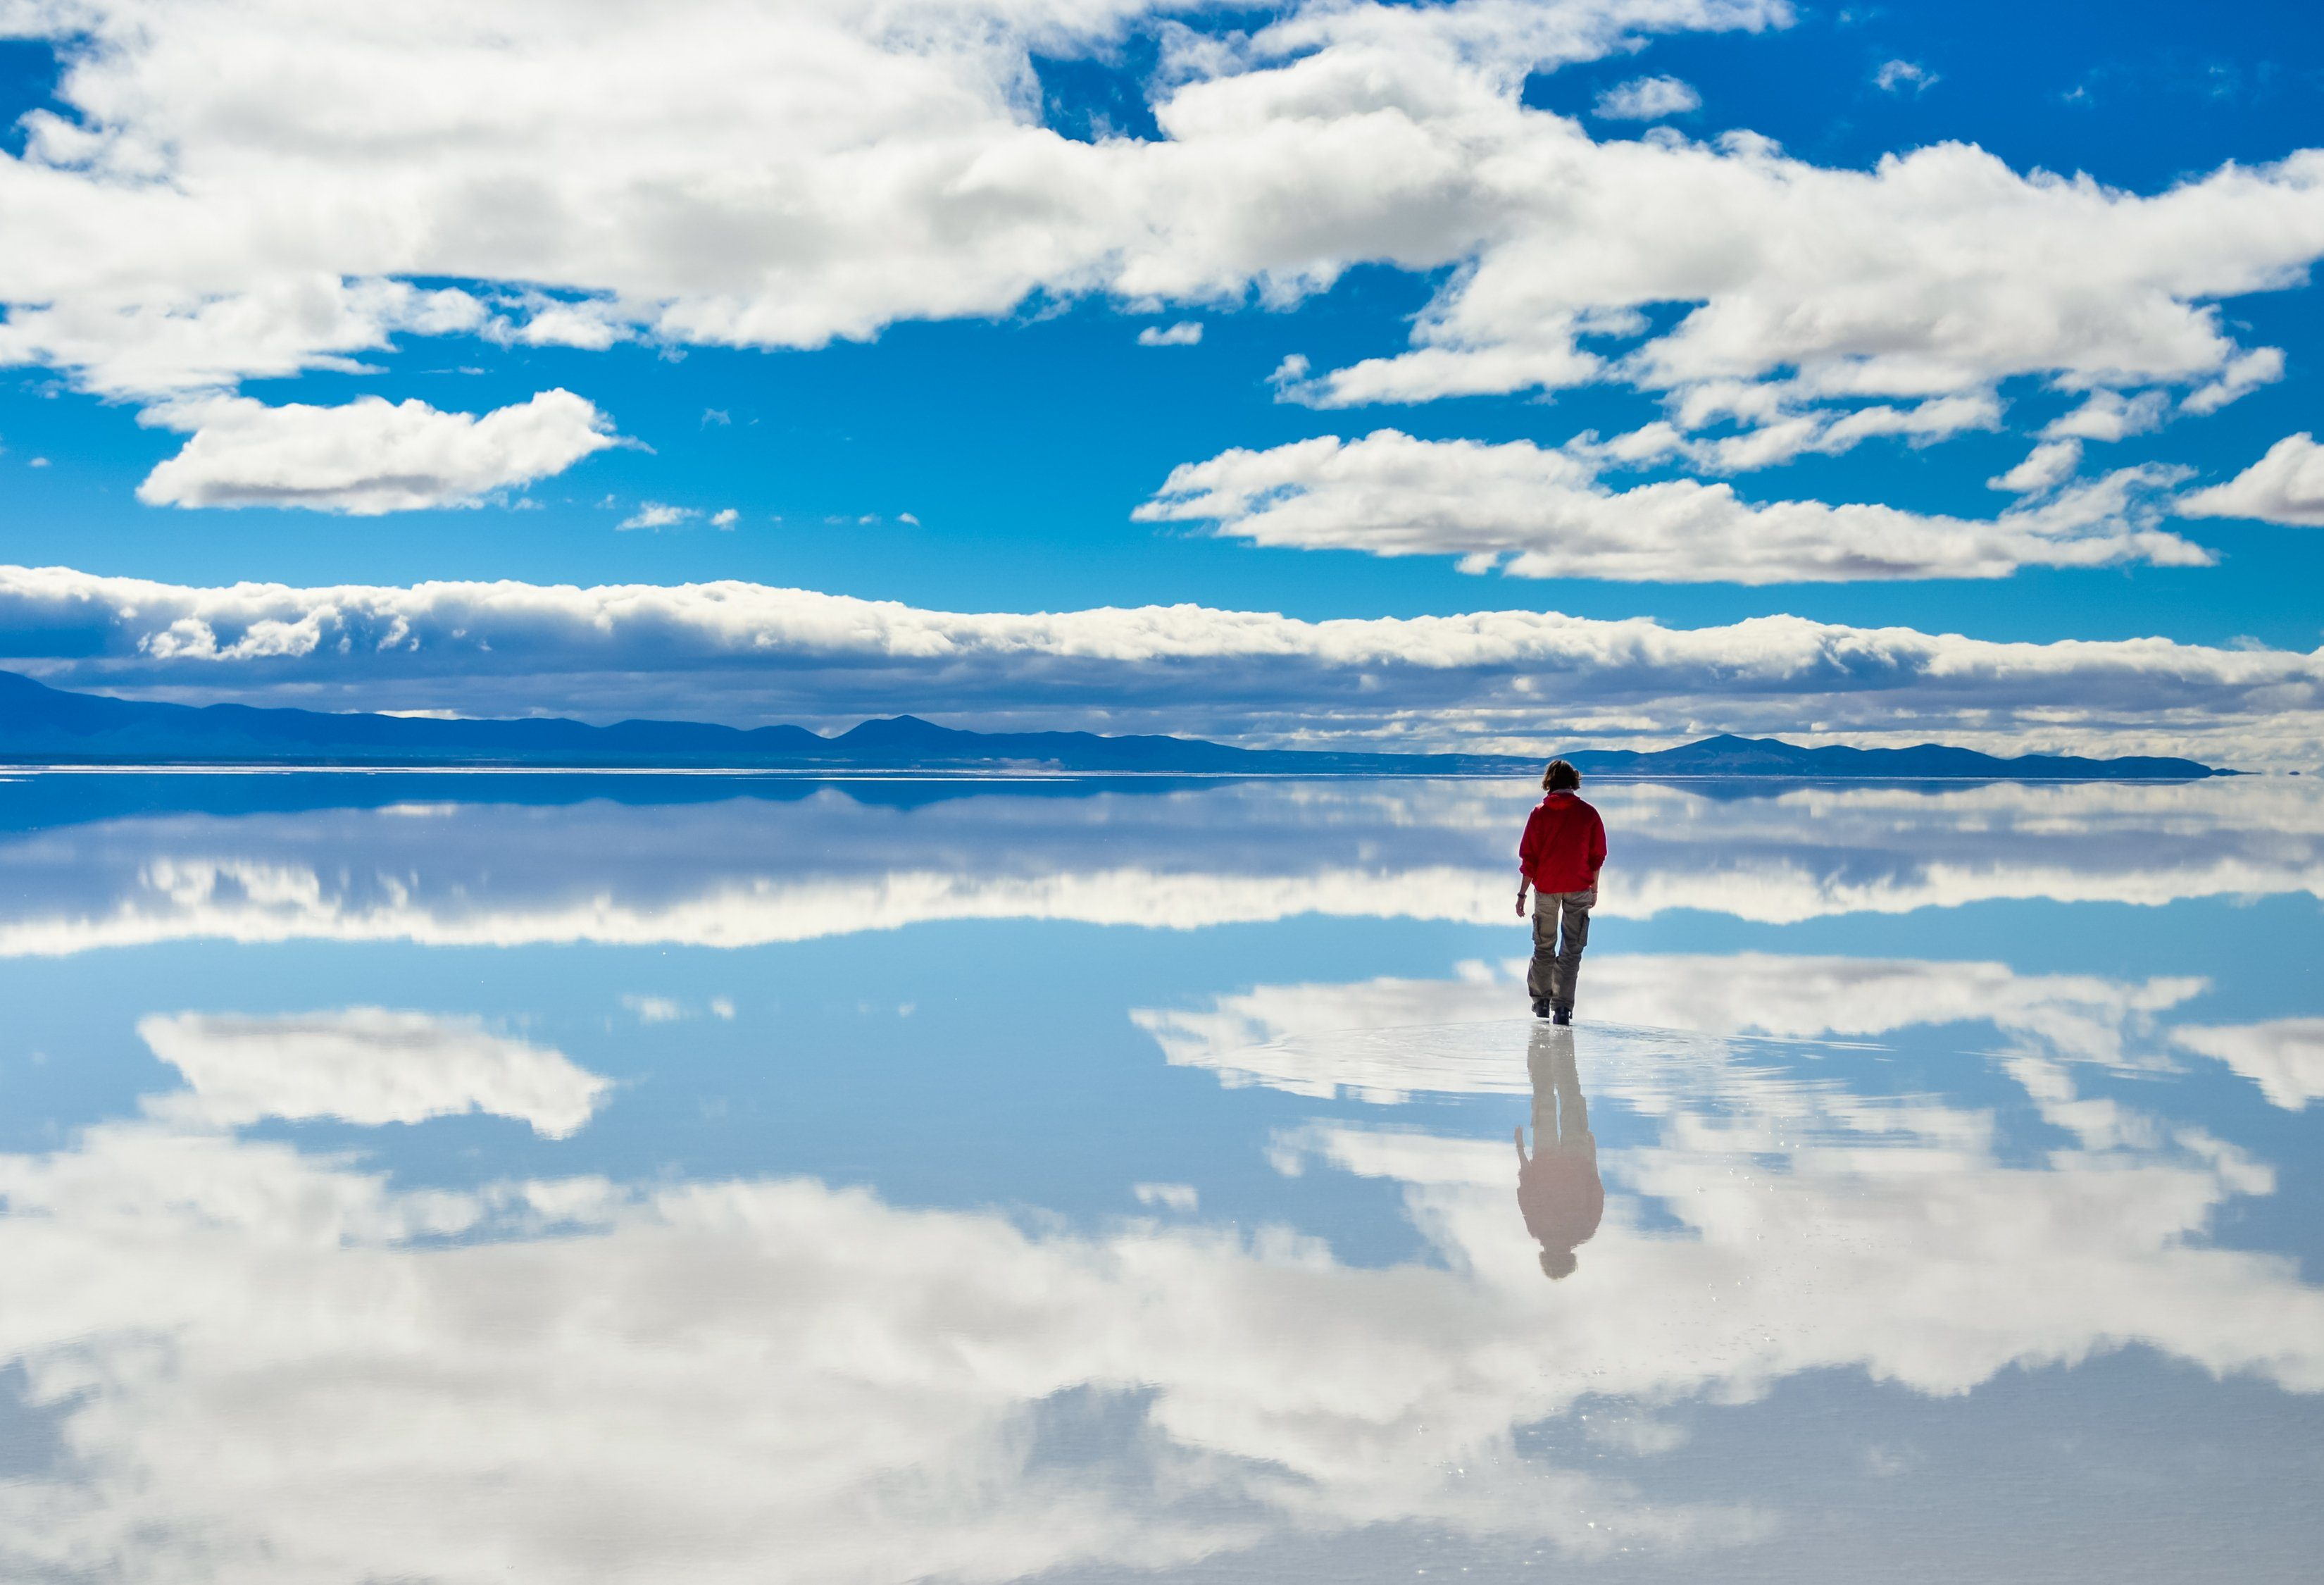 Girl in red on Salar de Uyuni in Bolivia covered with water with cloudy sky reflections